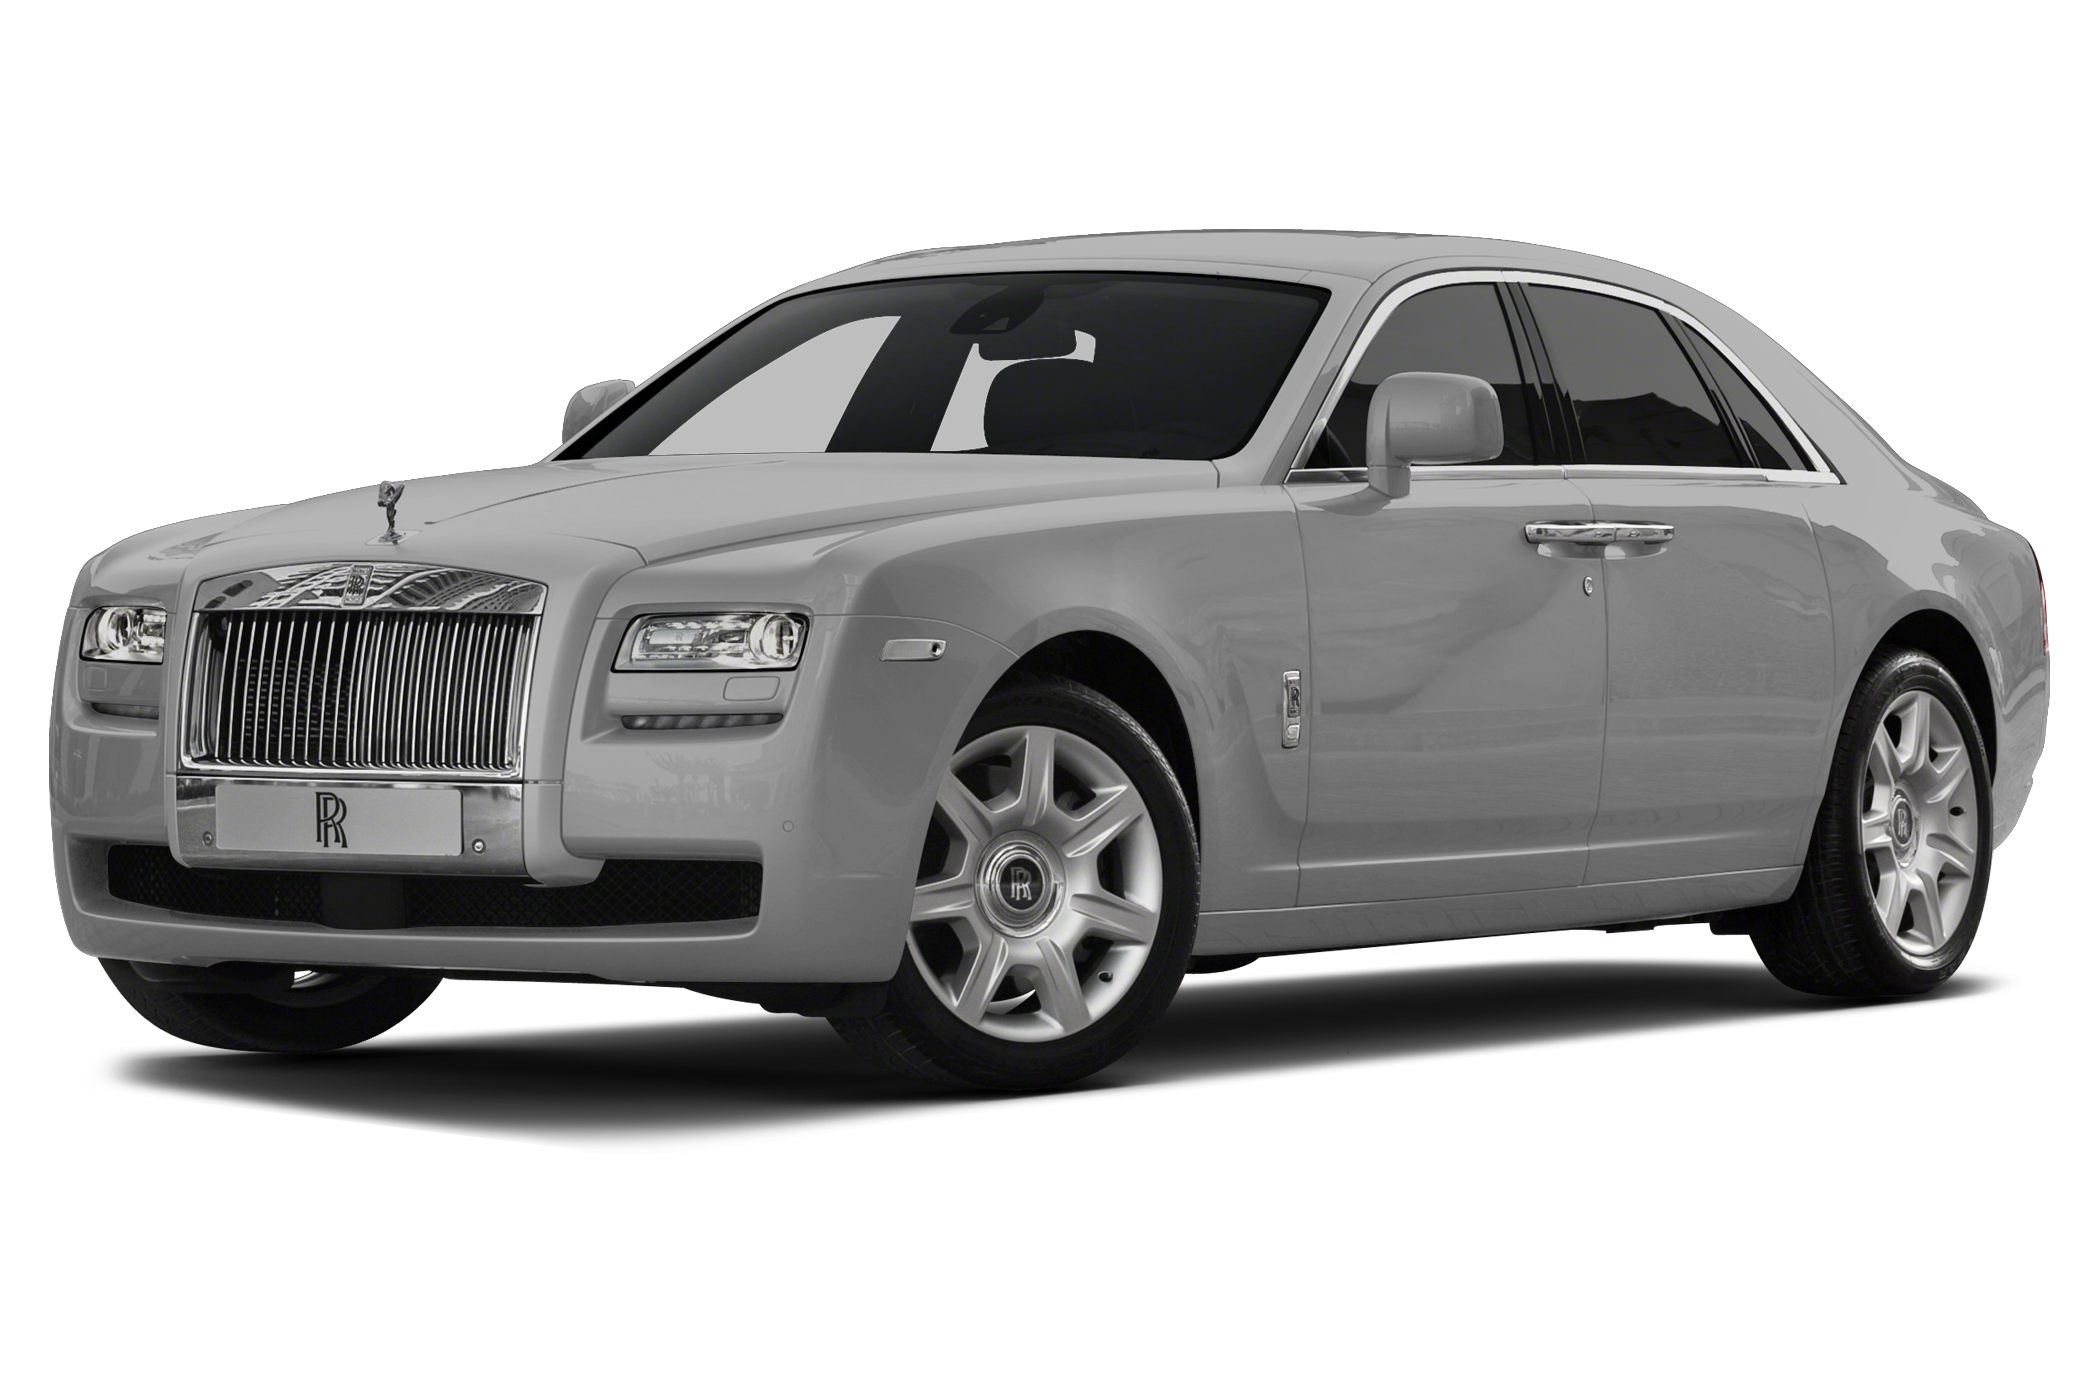 2013 Rolls-Royce Ghost Base Sedan for sale in Pasadena for $209,990 with 11,042 miles